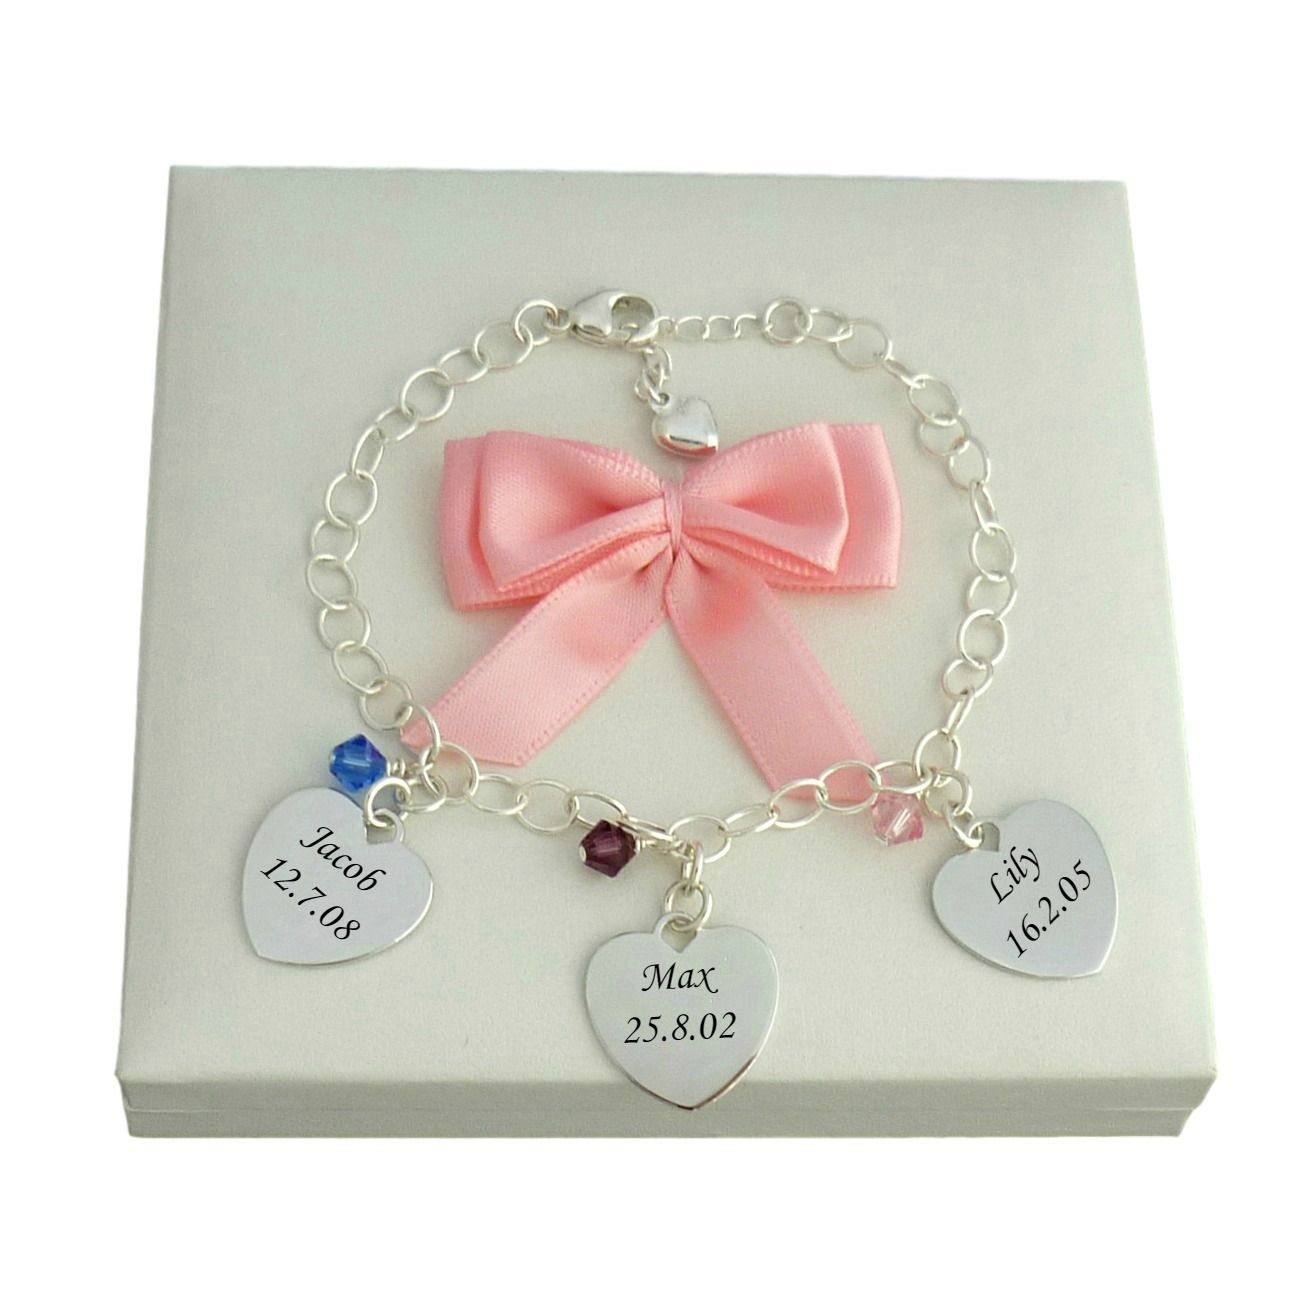 Birthstone Bracelet with Names Engraved on Silver Hearts | Jewels 4 ...